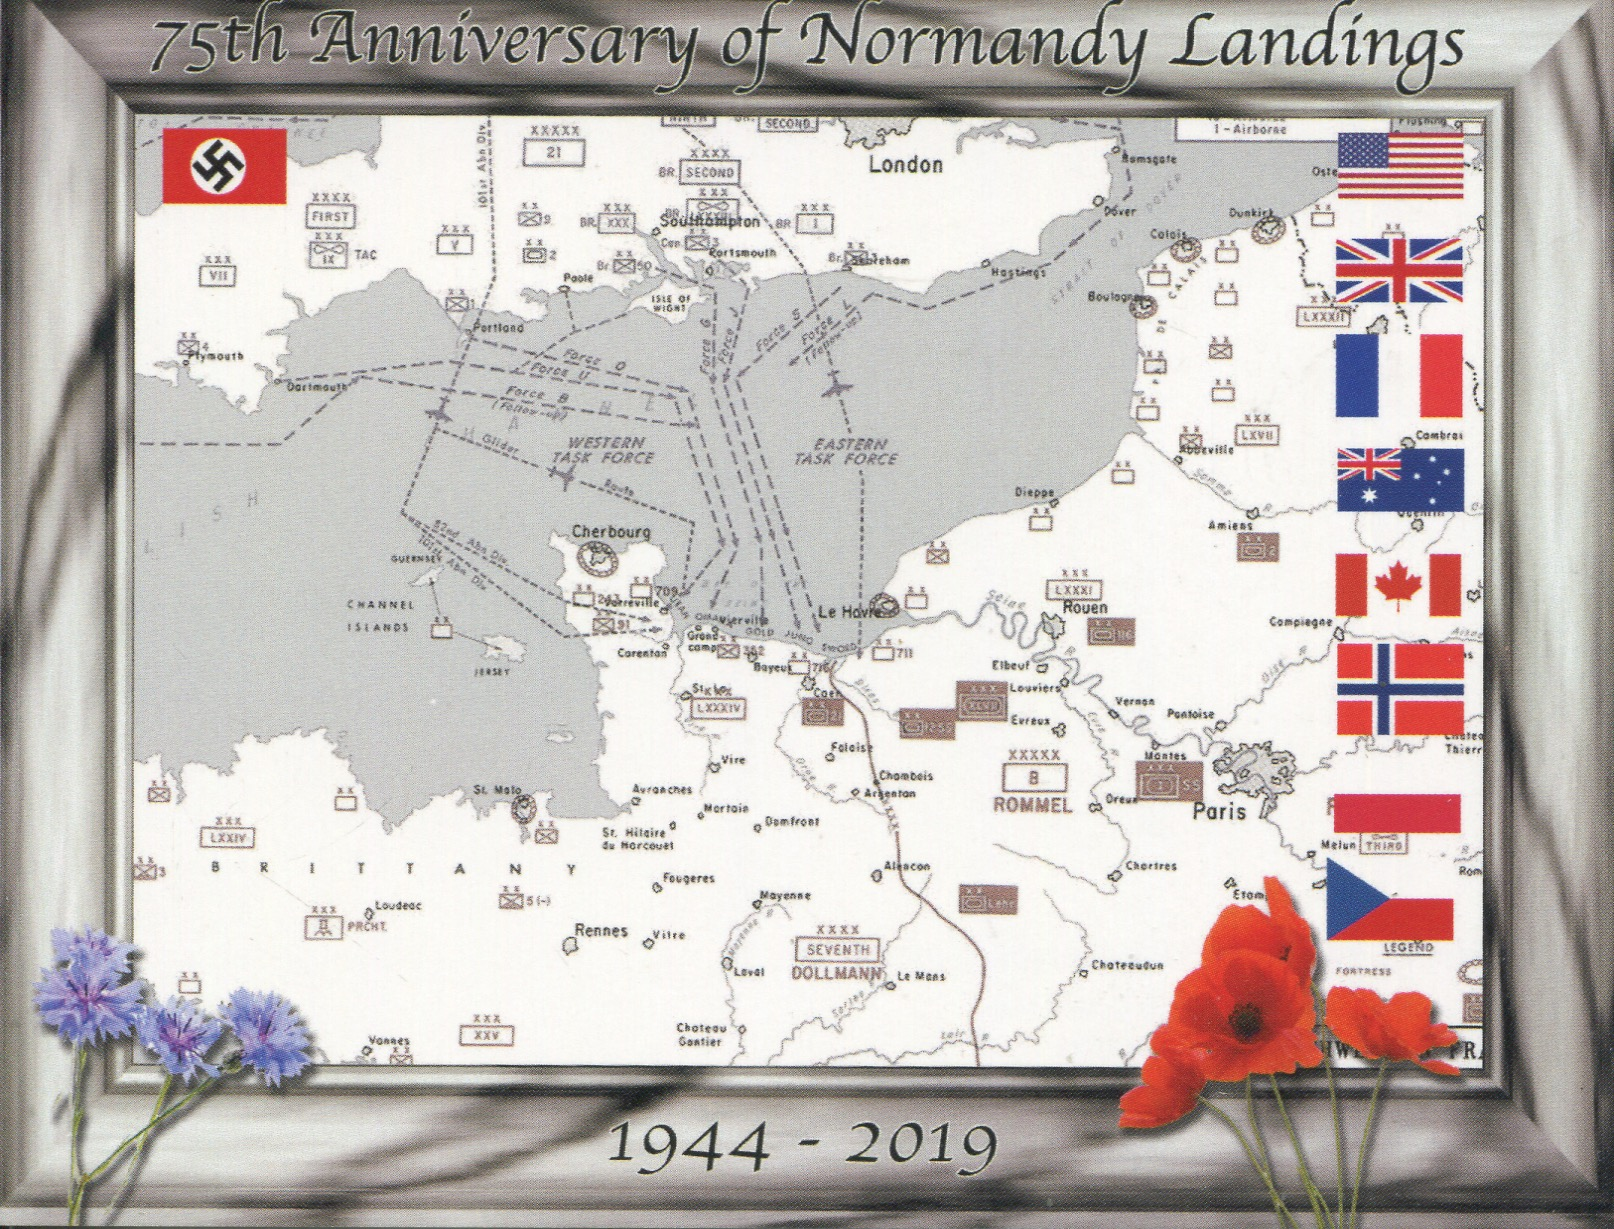 75th Anniversary of Normandy Landings (D-Day)